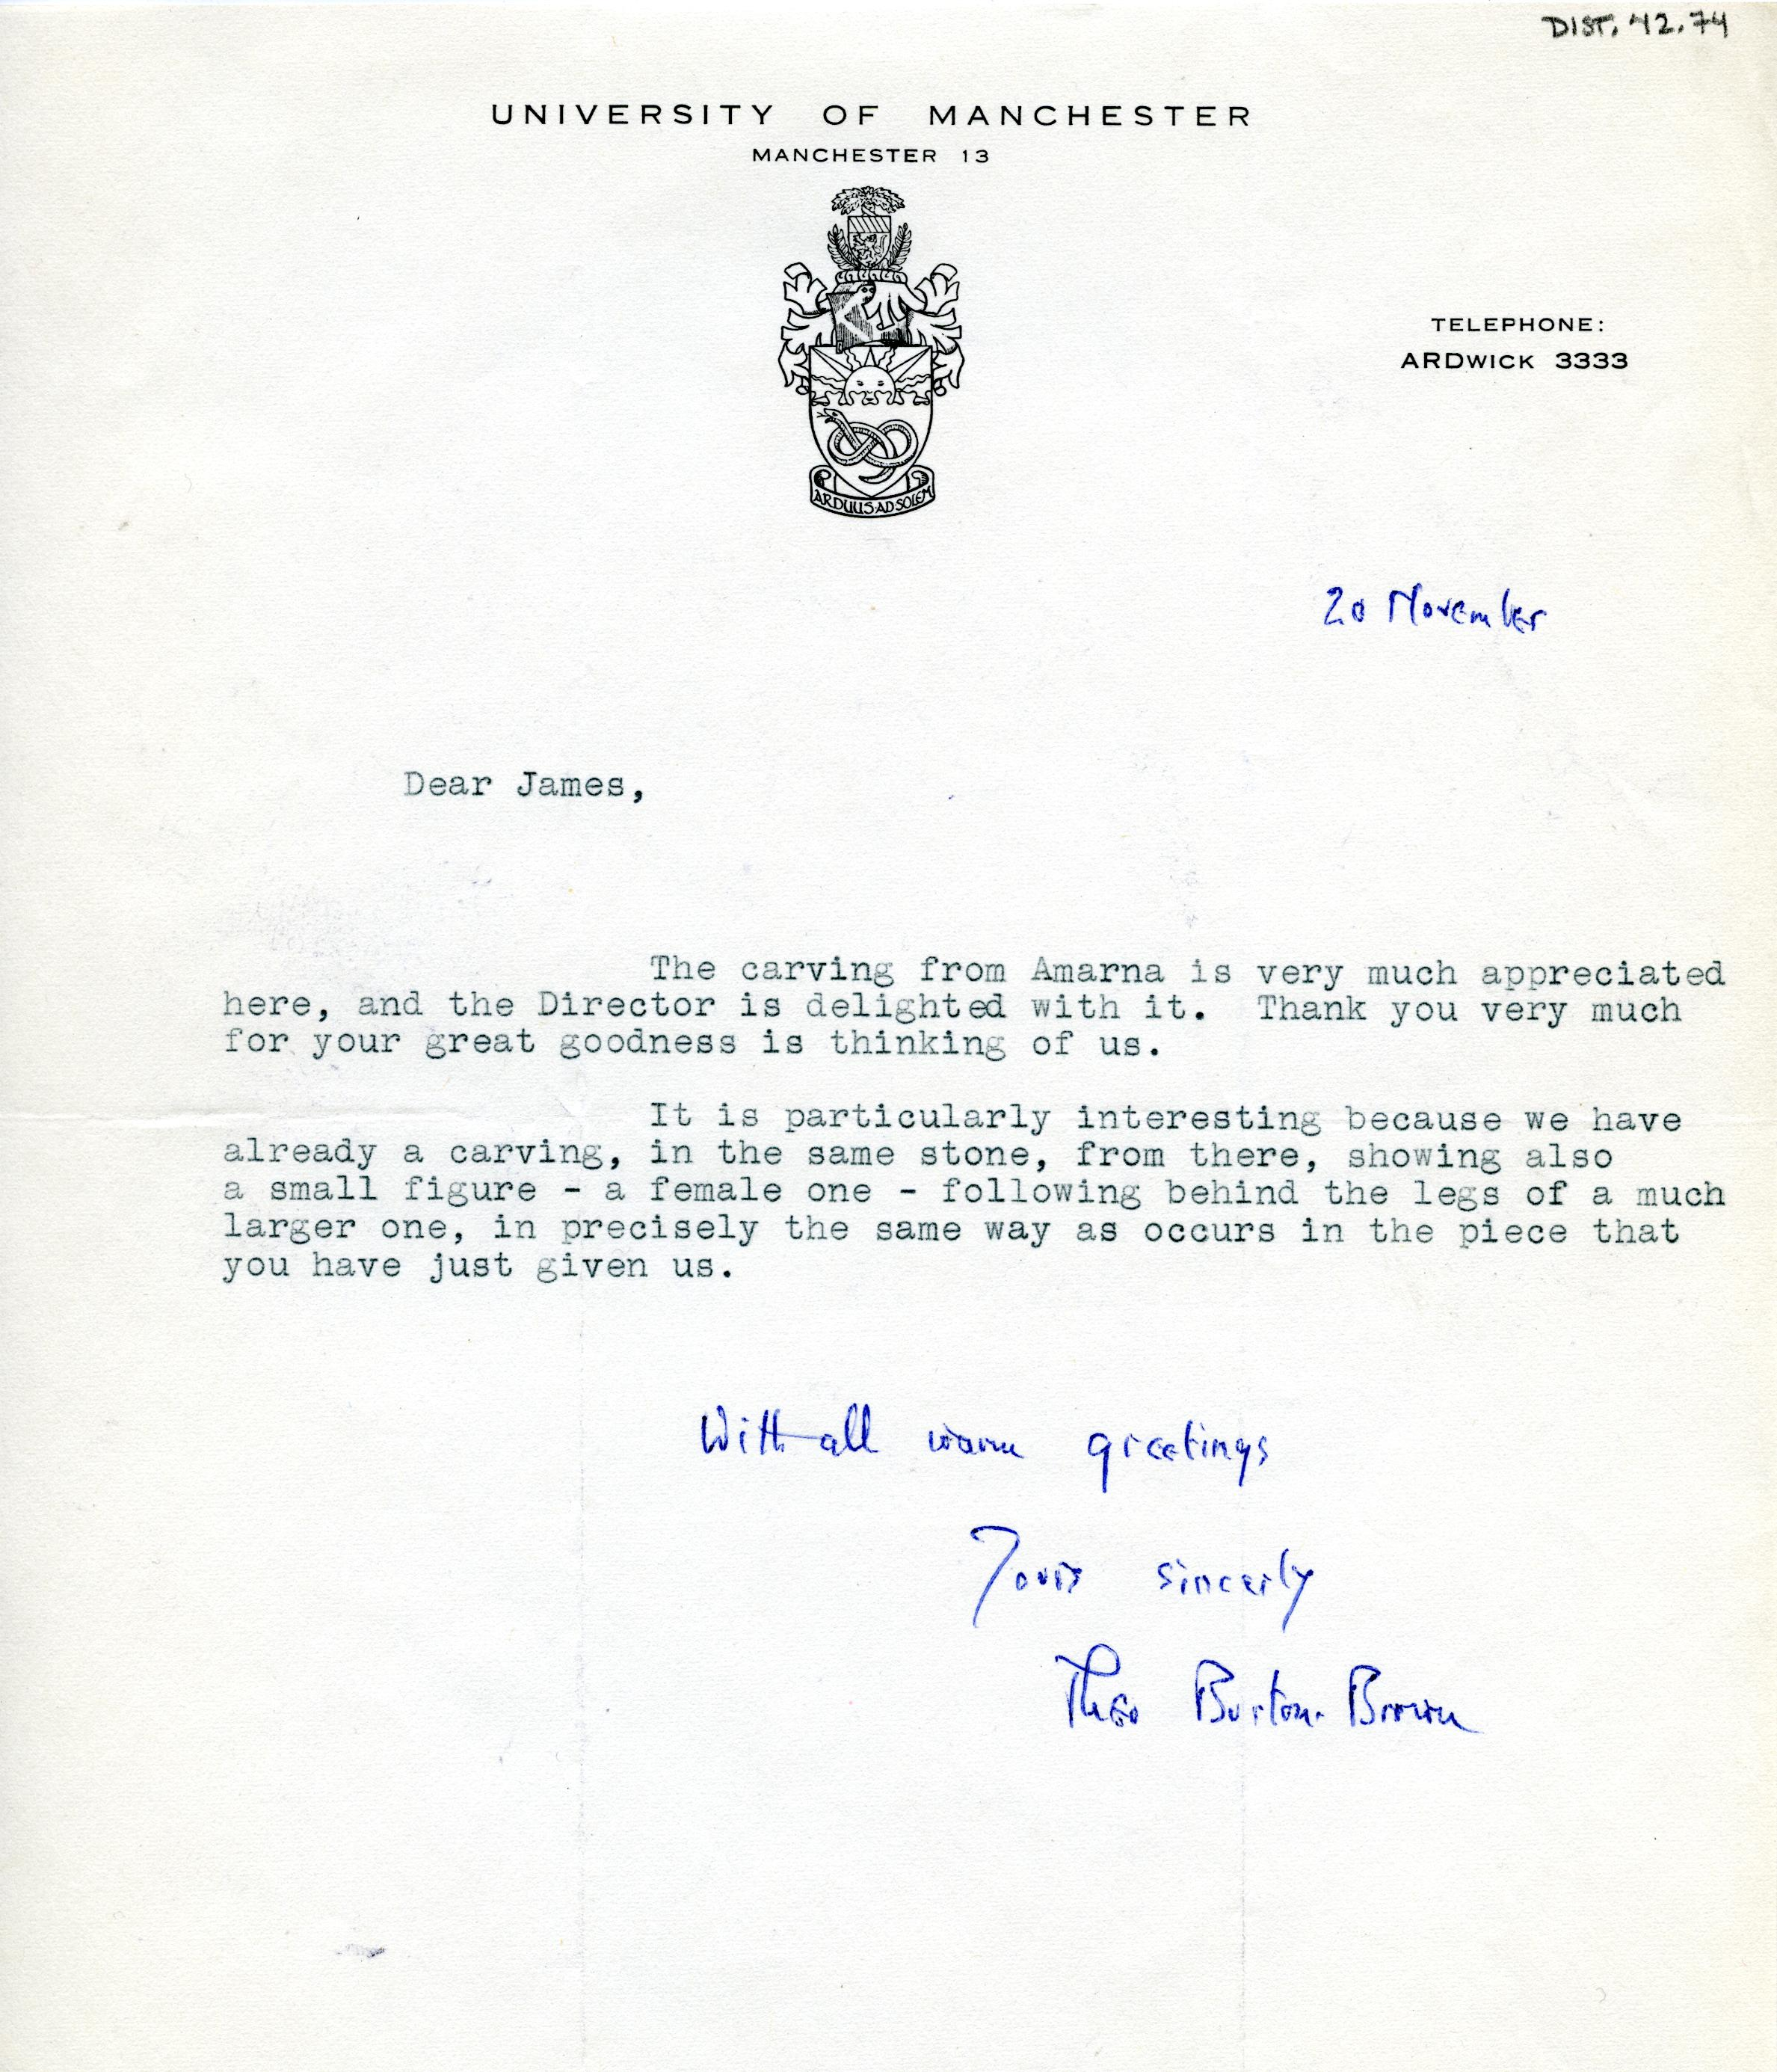 1922-71 Miscellaneous correspondence with museums DIST.42.74